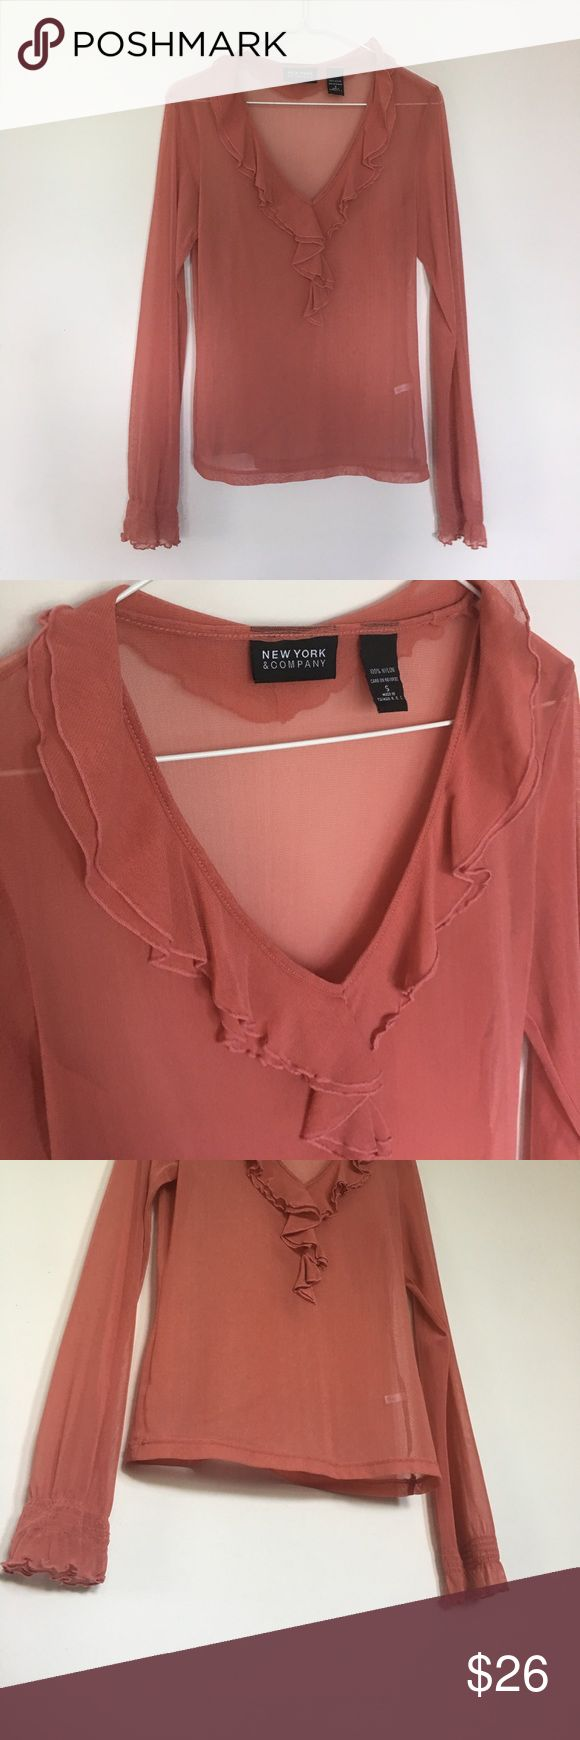 New York & Company sheer mesh coral blouse Long sleeve sheer mesh coral blouse with ruffle deep v neckline and cuff detail lettuce edge ~ cute brunch, baby or bridal shower dress up or down top LIKE NEW* New York & Company Tops Blouses